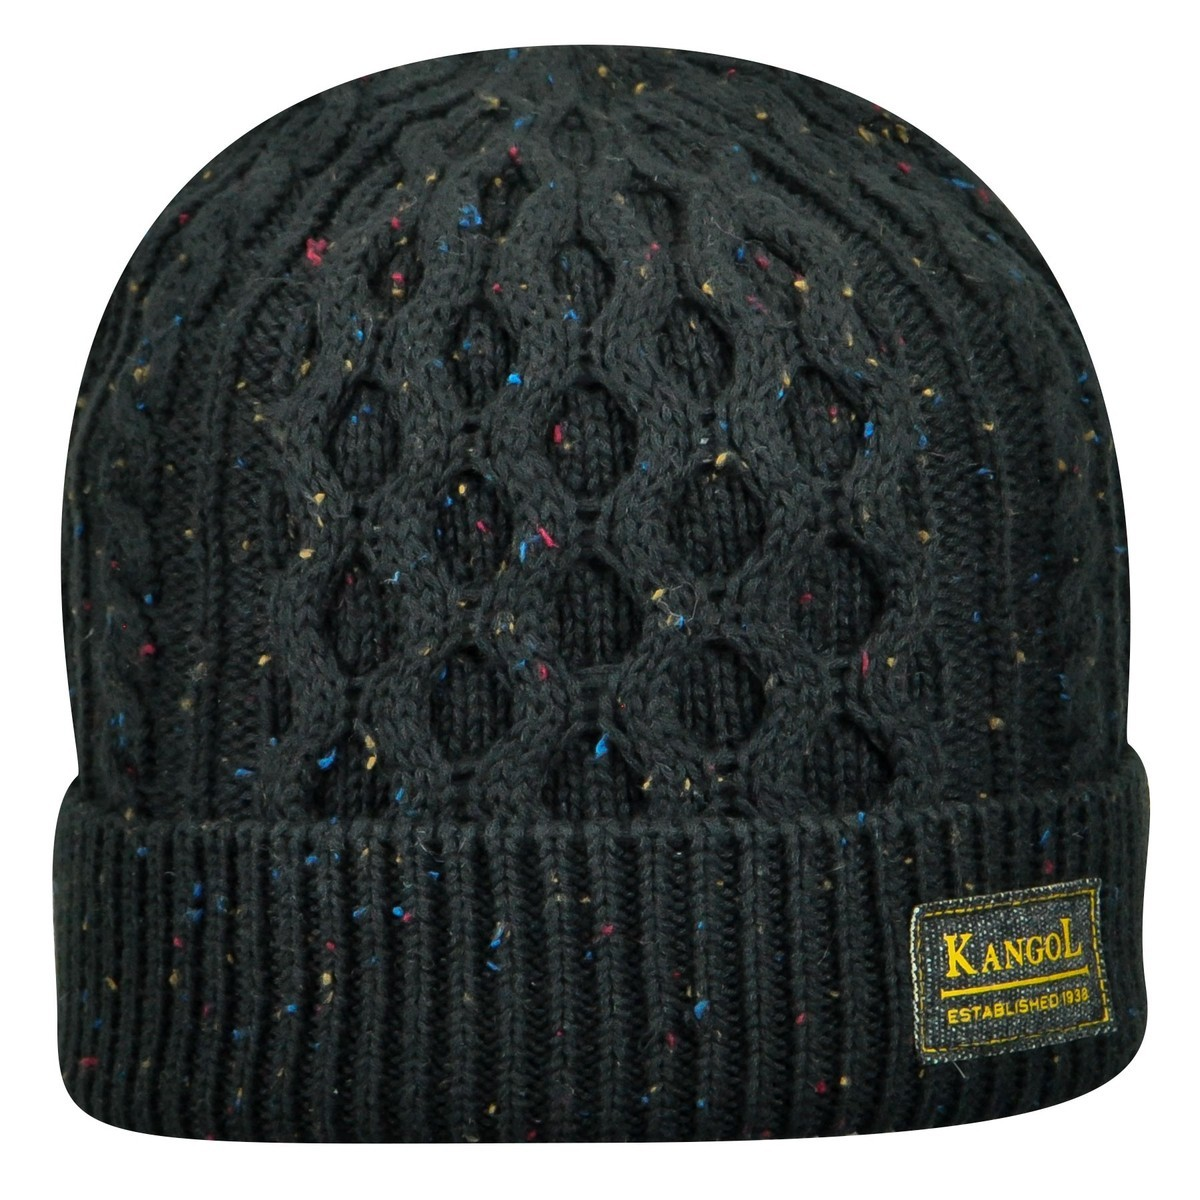 Kangol カンゴール Knep Cable Pull-On BLACK Beanies & Pull Ons 帽子 BLACK